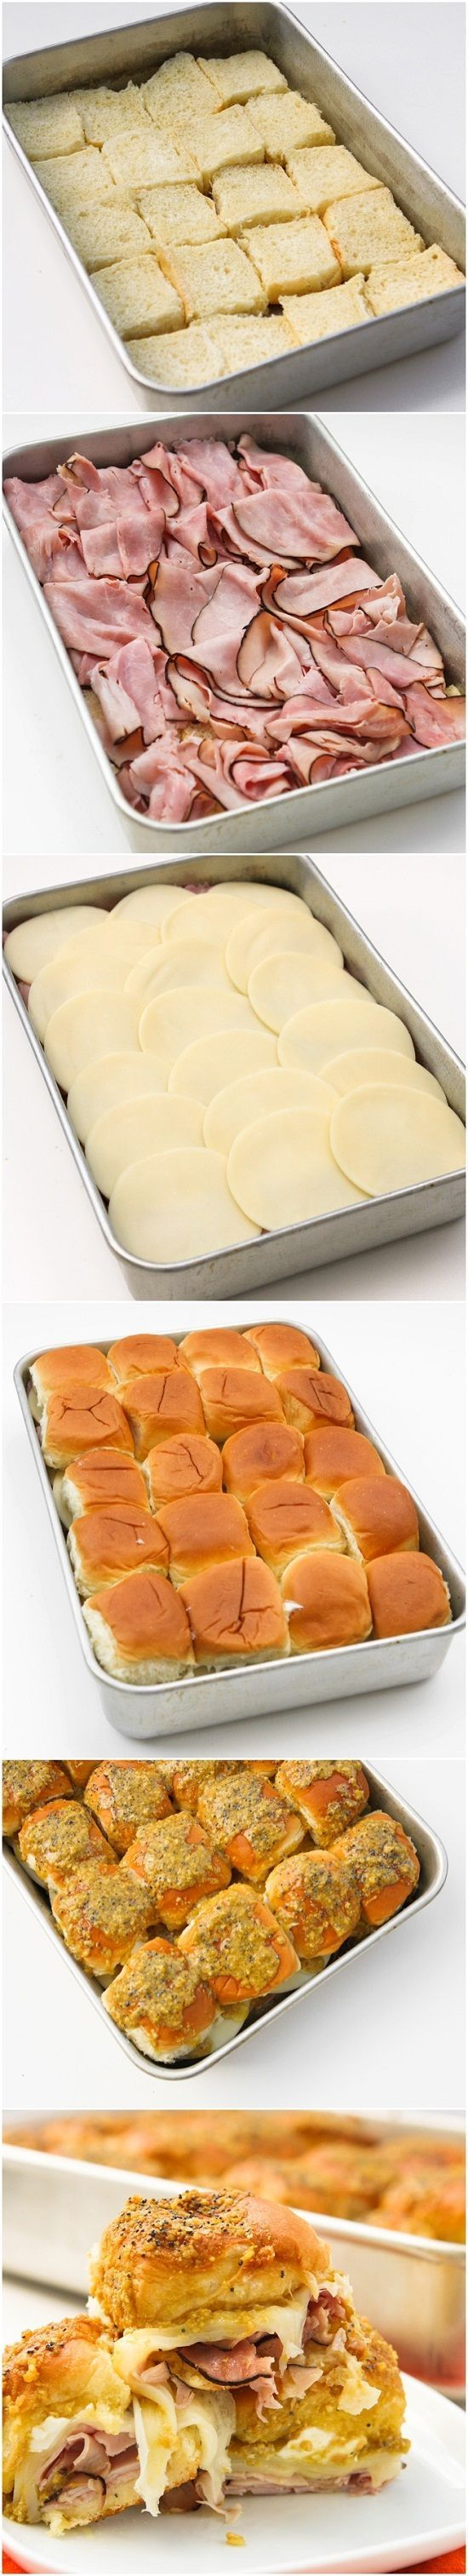 Hawaiian ham and cheese sliders.Preheat oven 350*,in 9x13 pan place bottom of Hawaiian Sweet Rolls,black forest deli ham slices,20 slices provolone cheese,spread 8oz.cream cheese on inside of top bun.Topping : mix 1/2 cup butter,melted, 1 tbsp mustard,1 tbsp Worcestershire sauce, 2 tbsp dried minced onions, 1/4 cup grated Parmesan cheese pour over buns.Sprinkle with 2Tbsp. poppy seed.Cover bake 25 min. or until cheese is melted and heated thru.